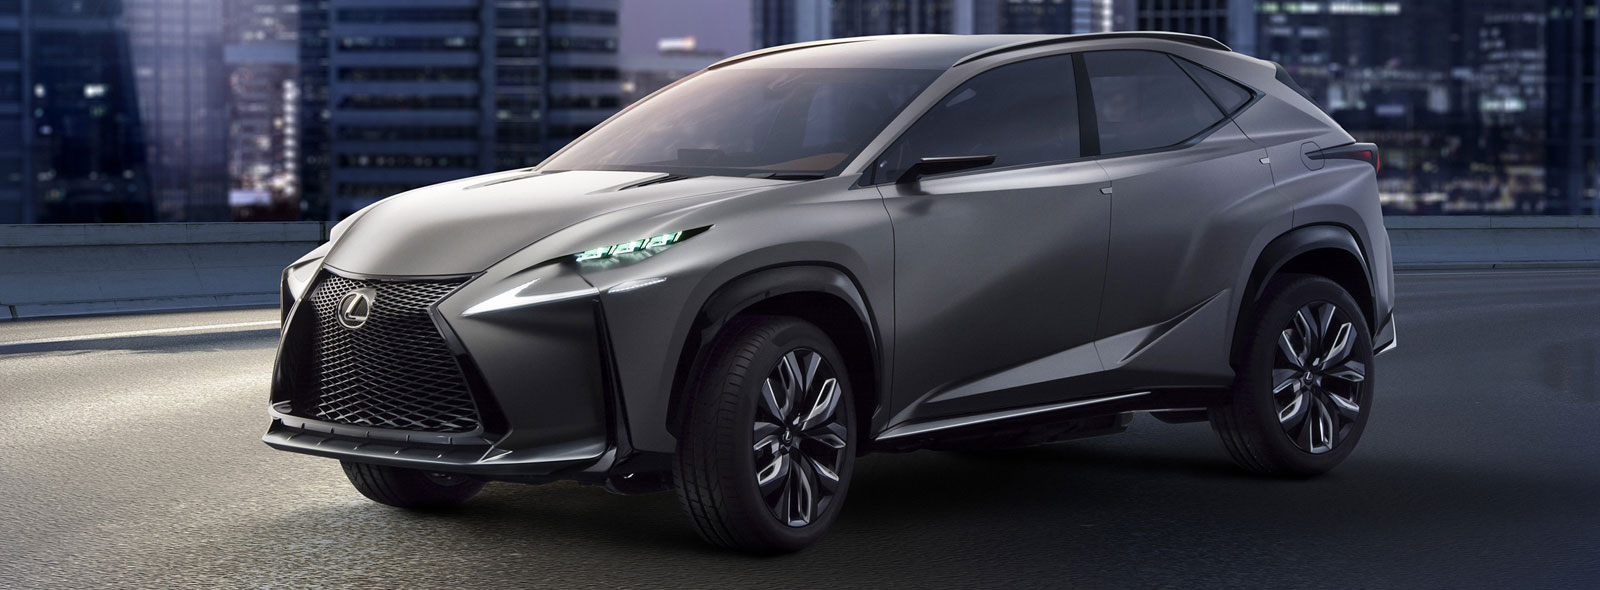 Lexus LF NX Concept Turbo SUV Car